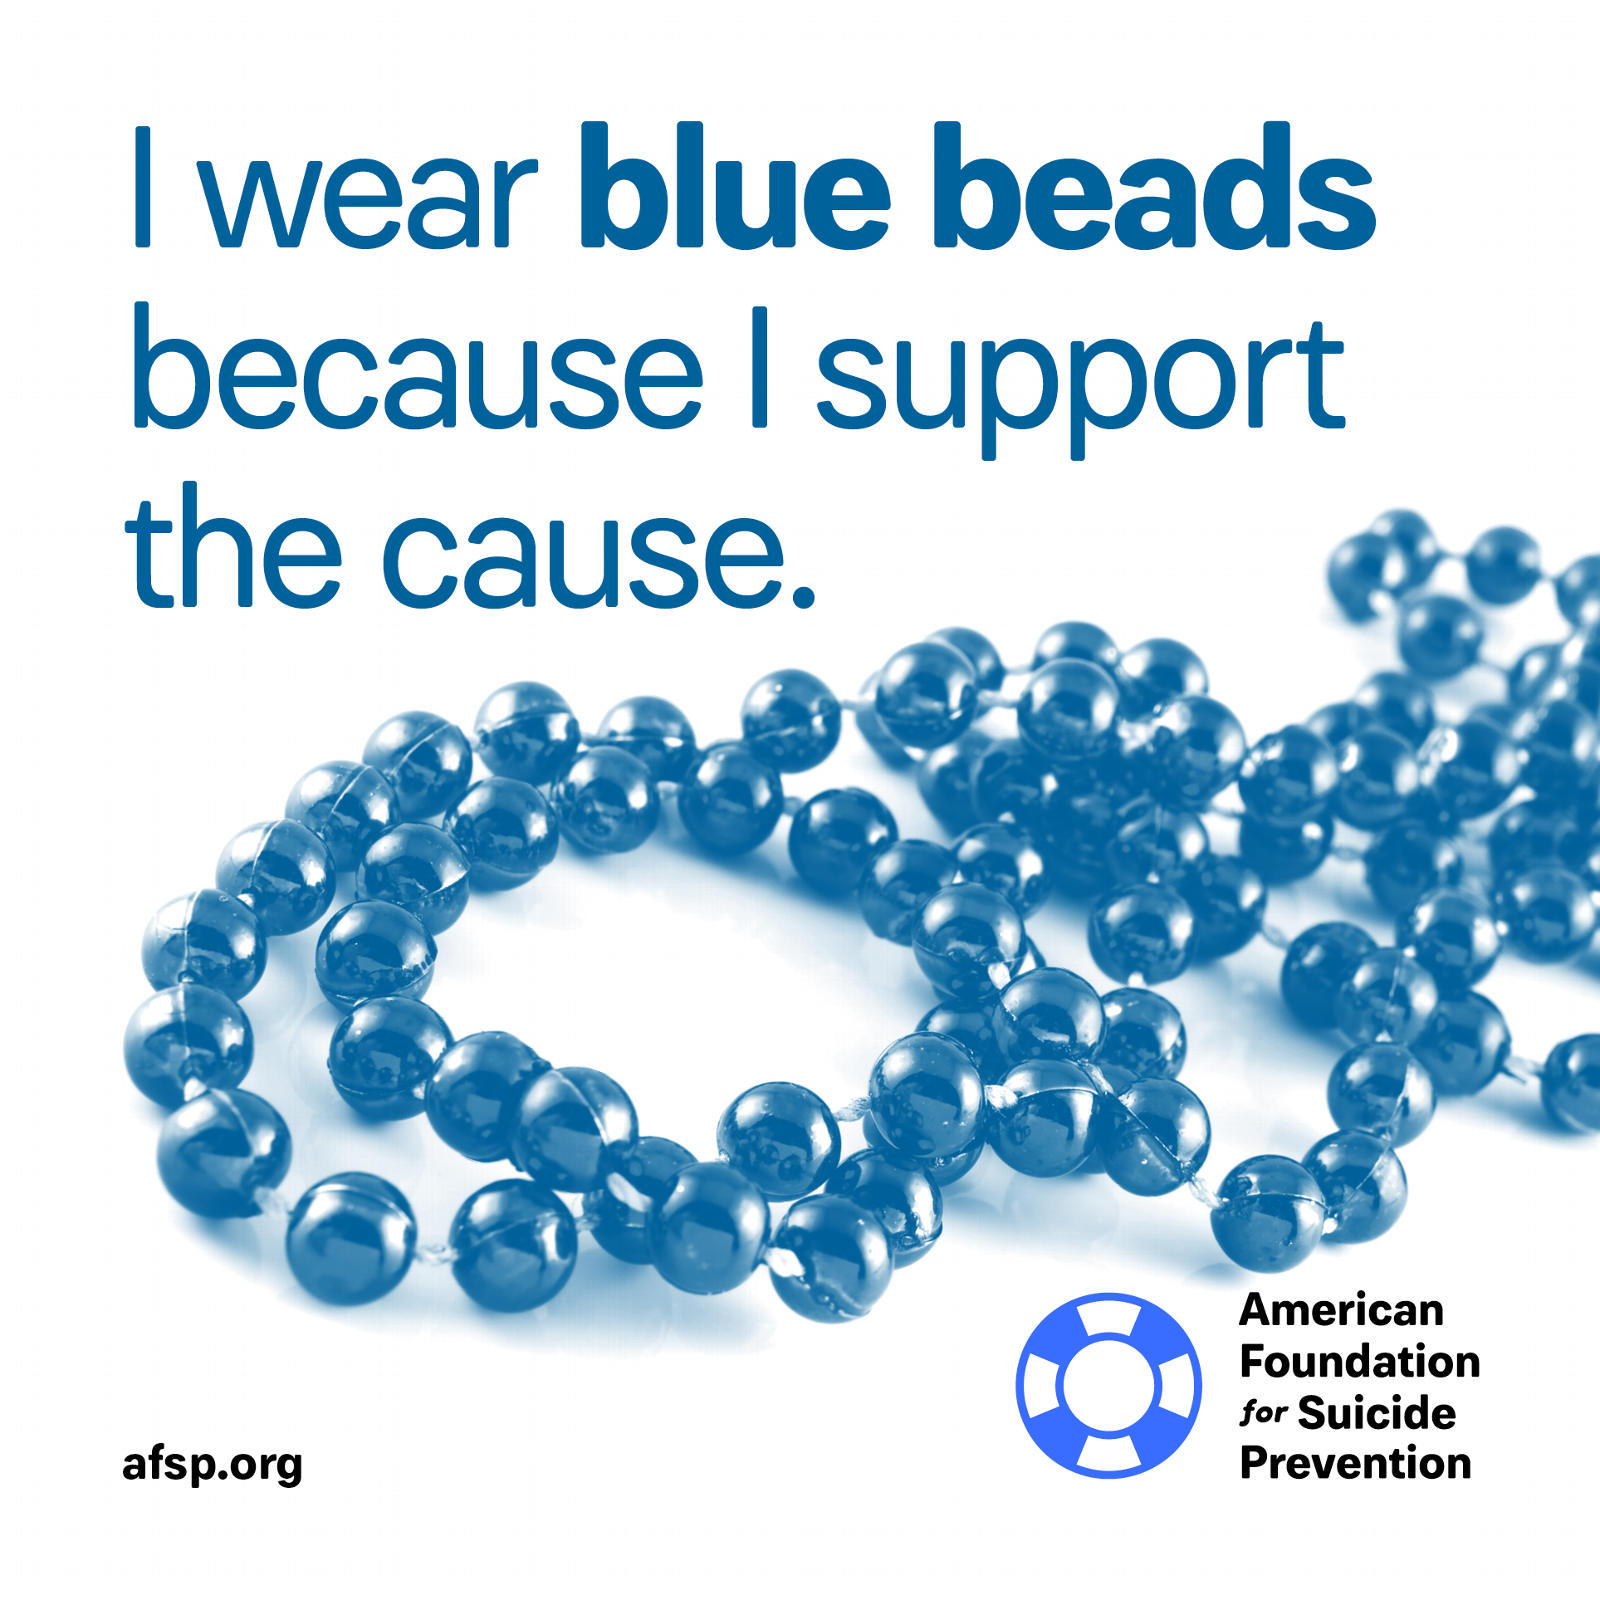 Blue beads because I support suicide prevention